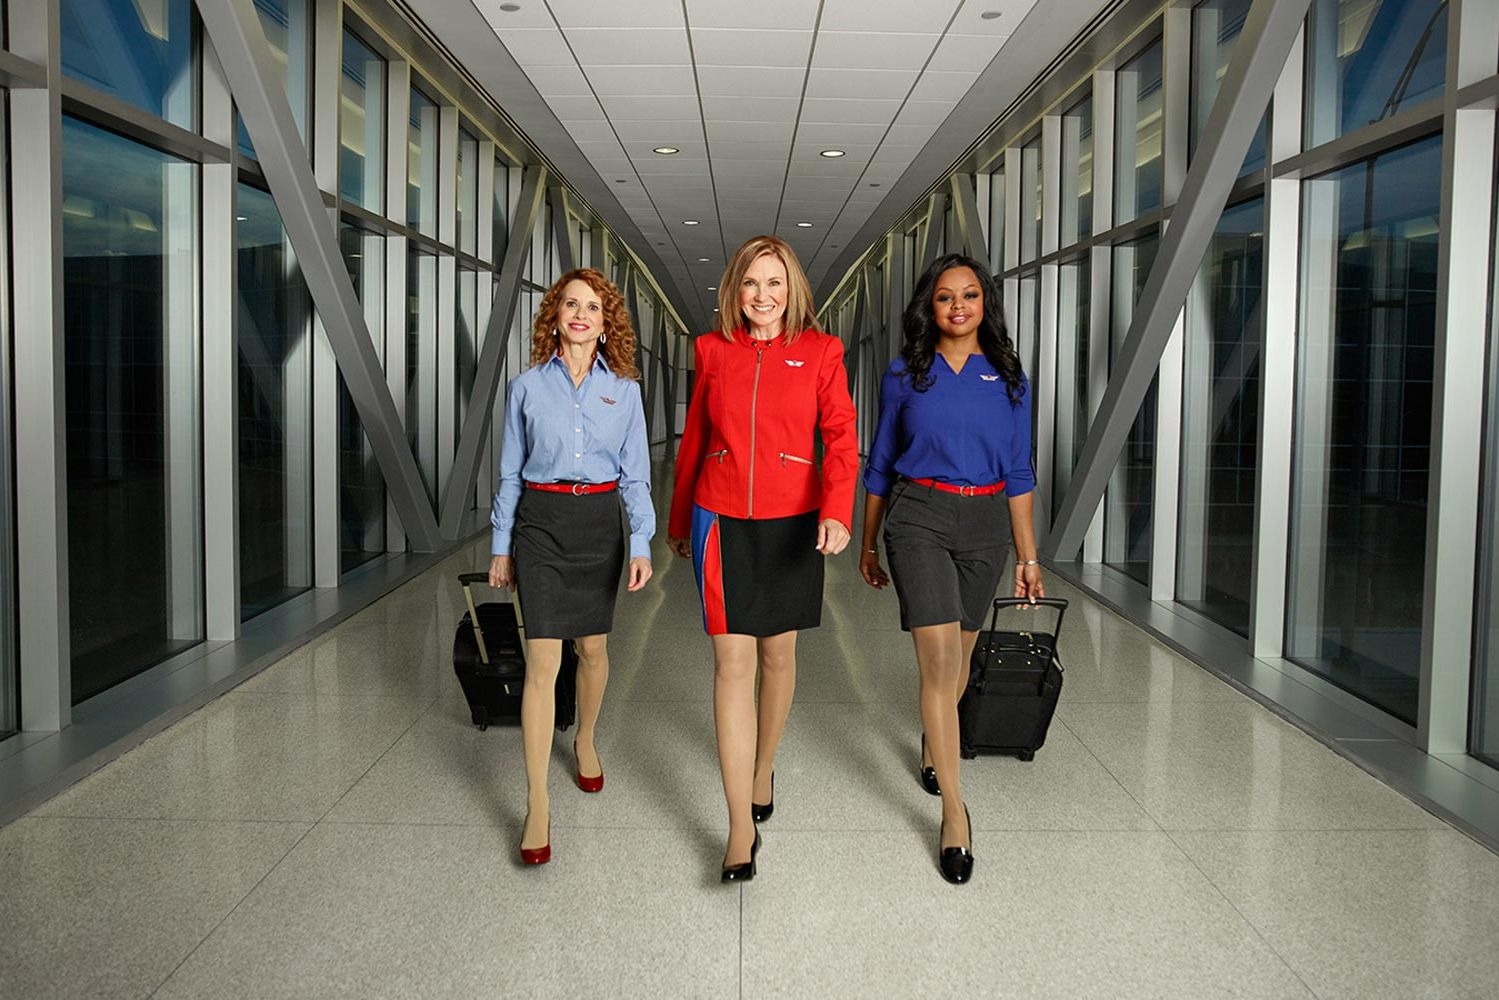 Southwest Just Debuted Its First New Uniforms in 20 Years